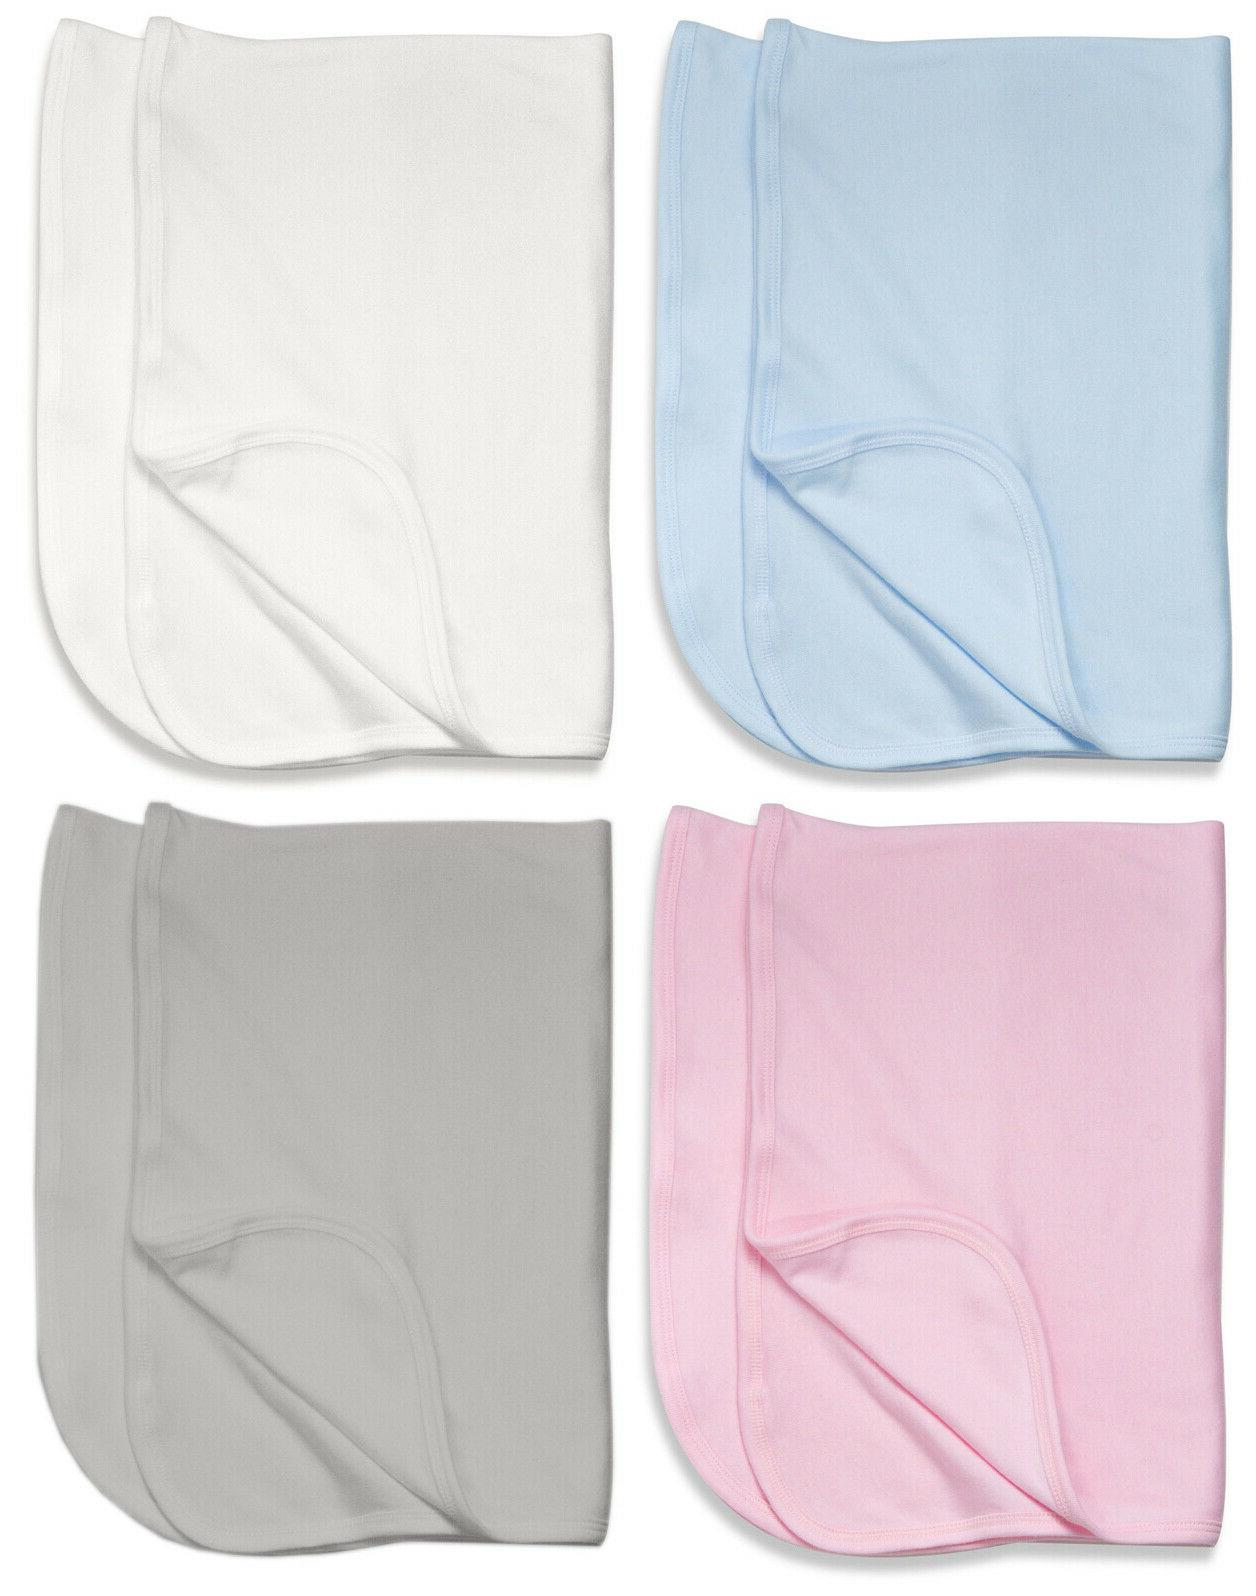 100 percent cotton receiving blanket in blue